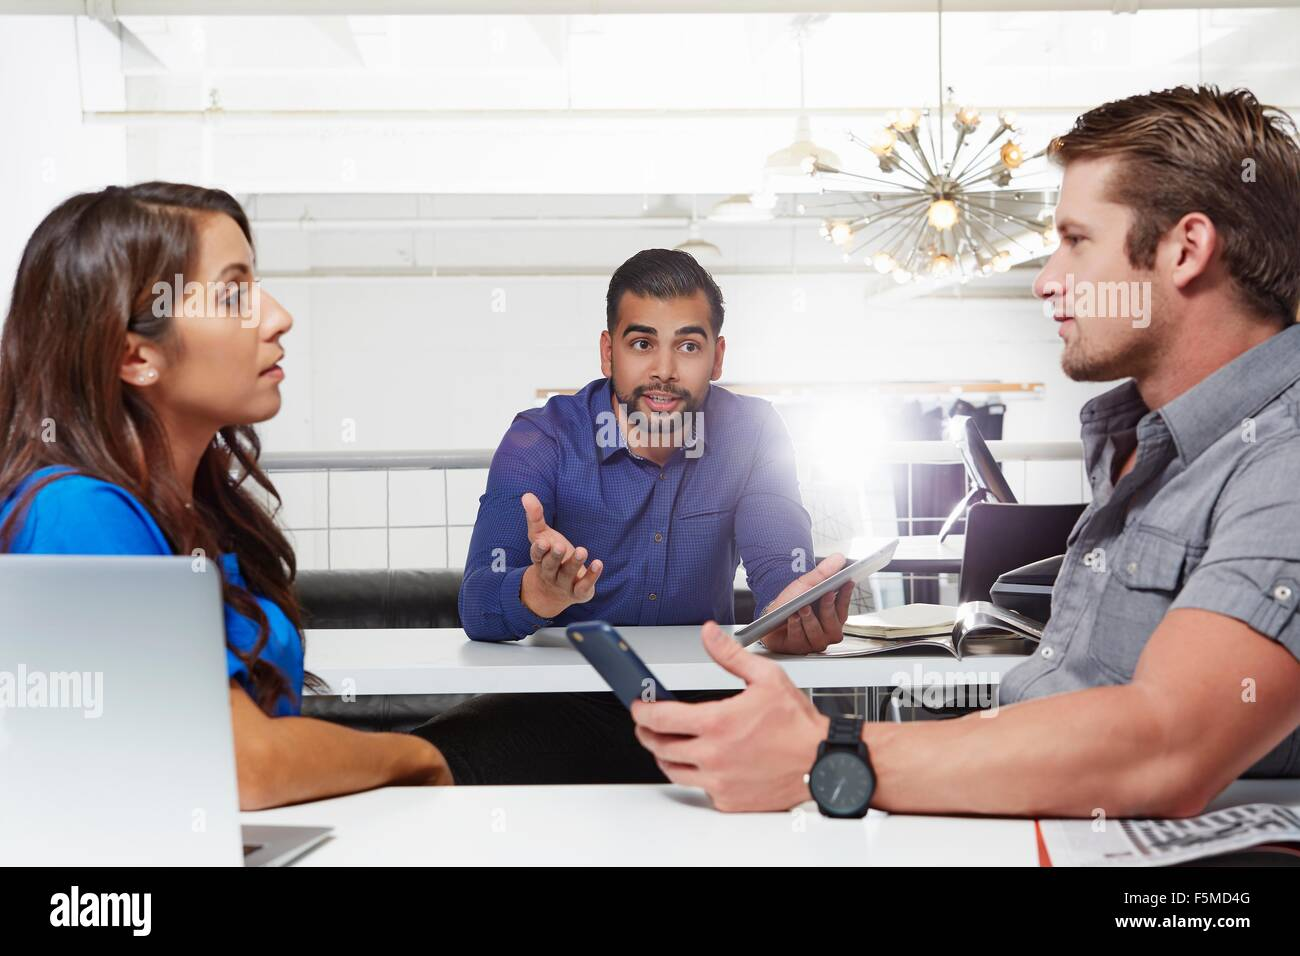 Small group of people having business meeting, male and female colleagues having disagreement - Stock Image